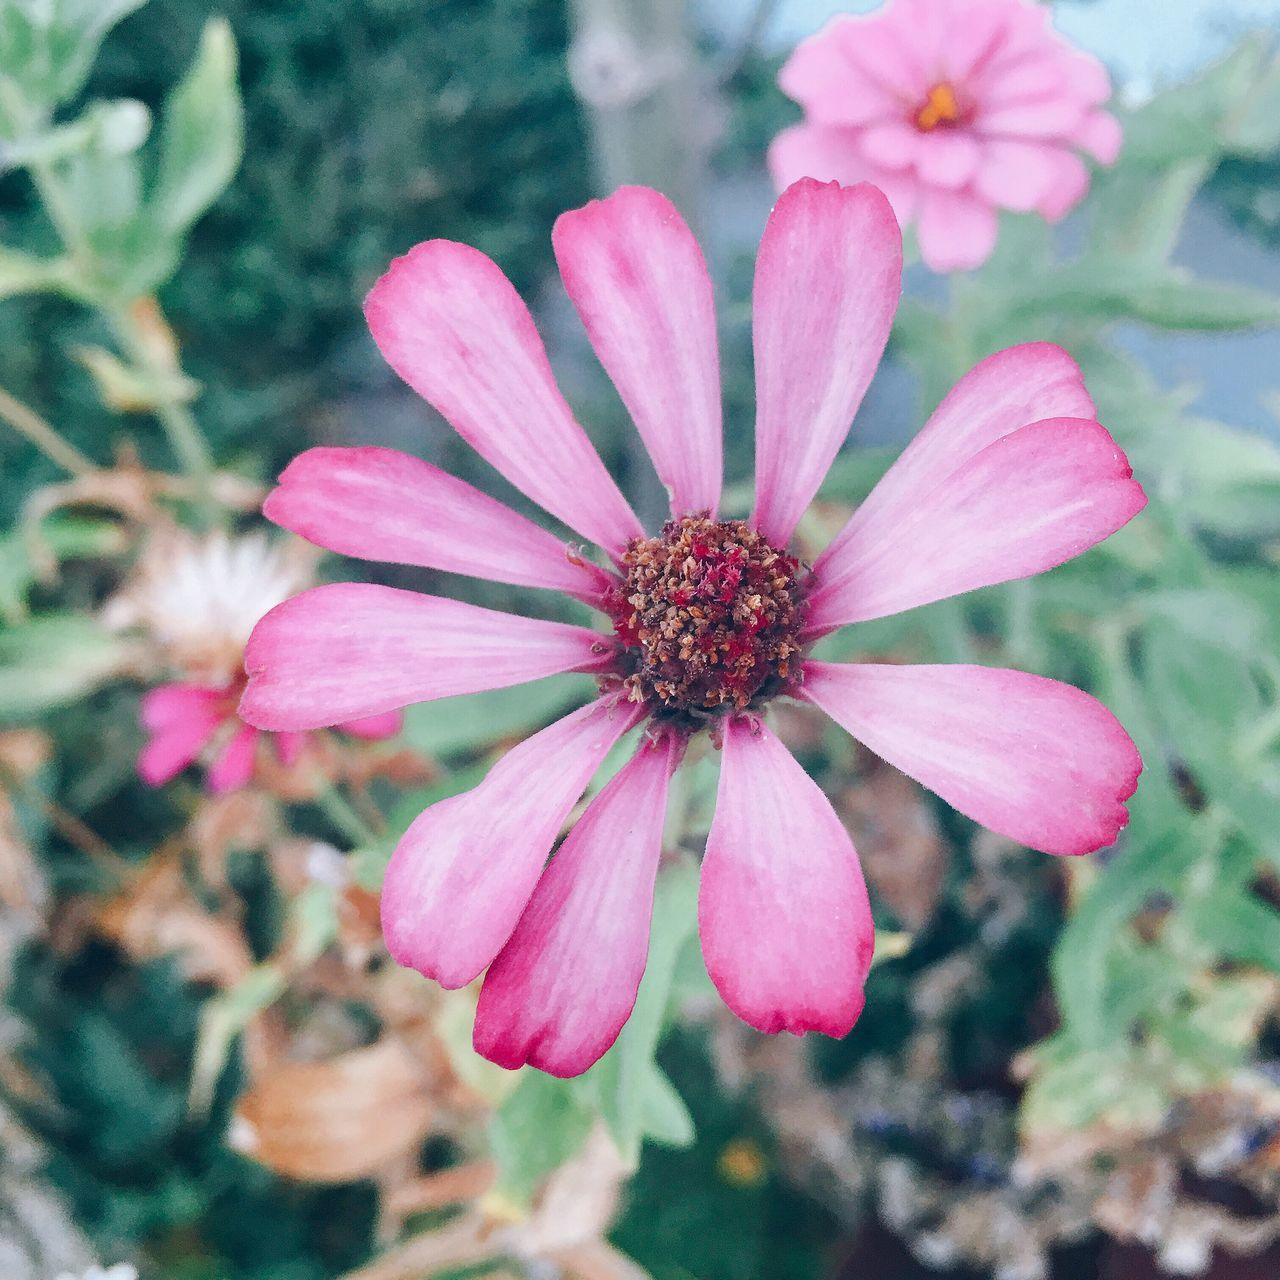 Flower Petal Flower Head Fragility Blooming Nature Pink Color Beauty In Nature Growth Pollen Day Focus On Foreground Plant Outdoors Freshness Close-up No People Osteospermum Zinnia  Eyeem Philippines